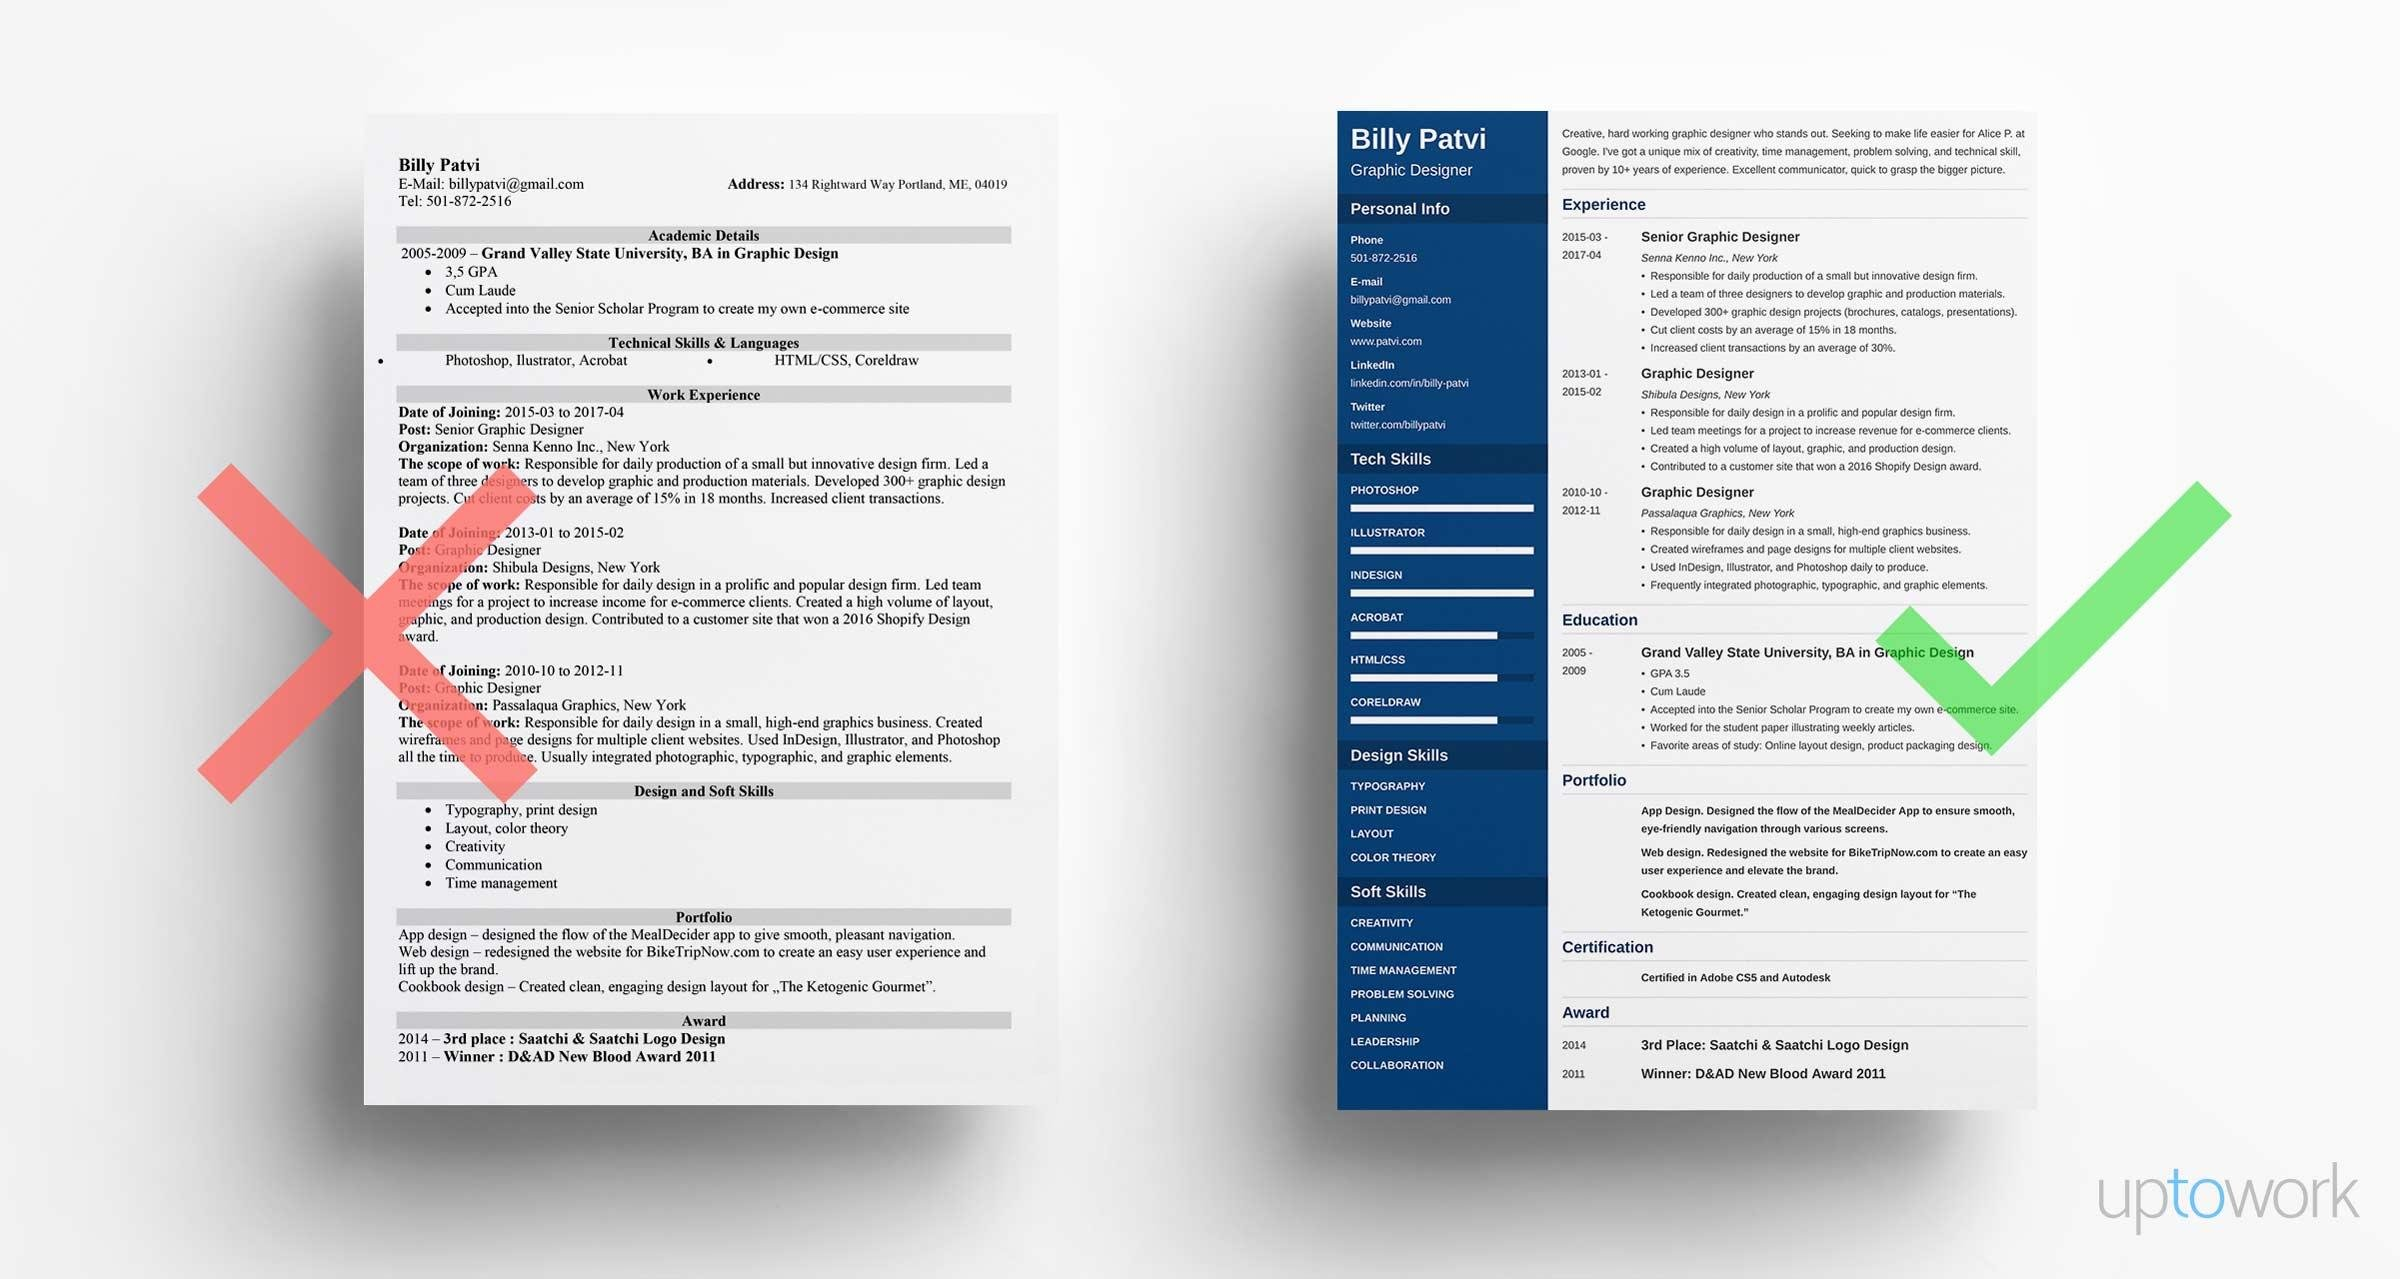 Graphic Designer Resume Template & Guide [20+ Examples].